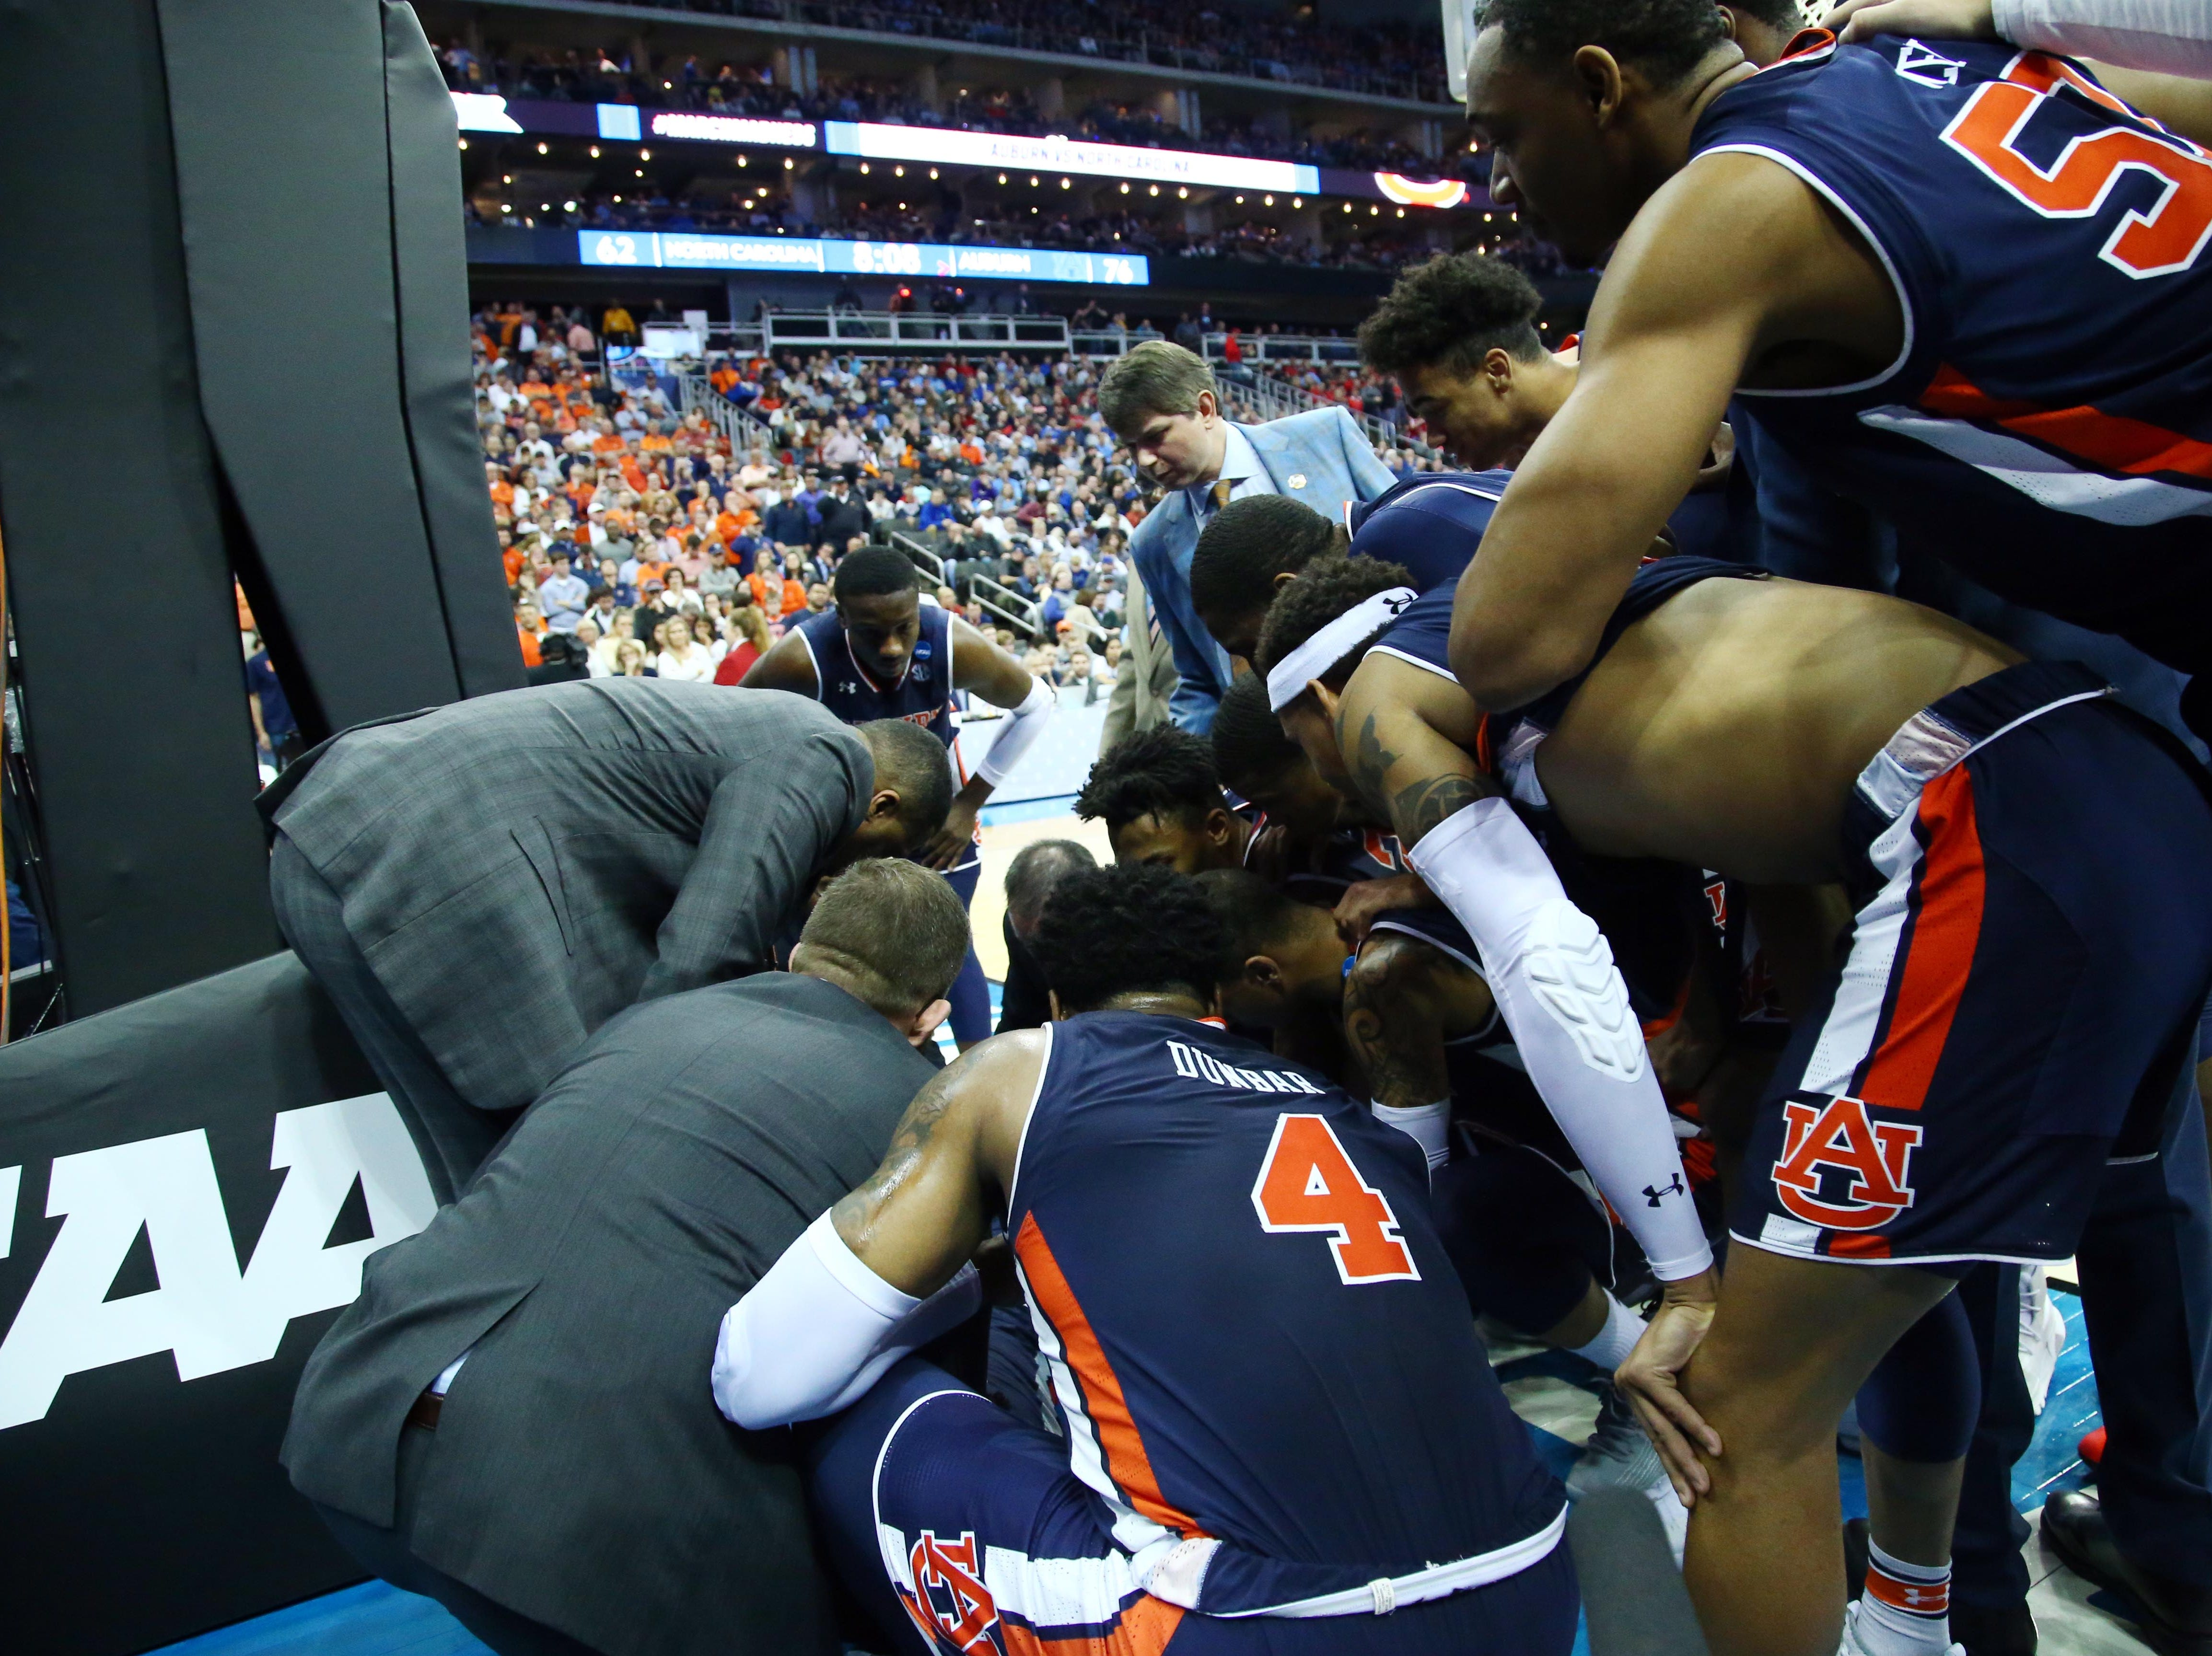 Auburn Tigers players and coaches huddle around forward Chuma Okeke (not pictured) after Okeke suffered an apparent injury against the North Carolina Tar Heels during the second half in the semifinals of the midwest regional of the 2019 NCAA Tournament at Sprint Center.